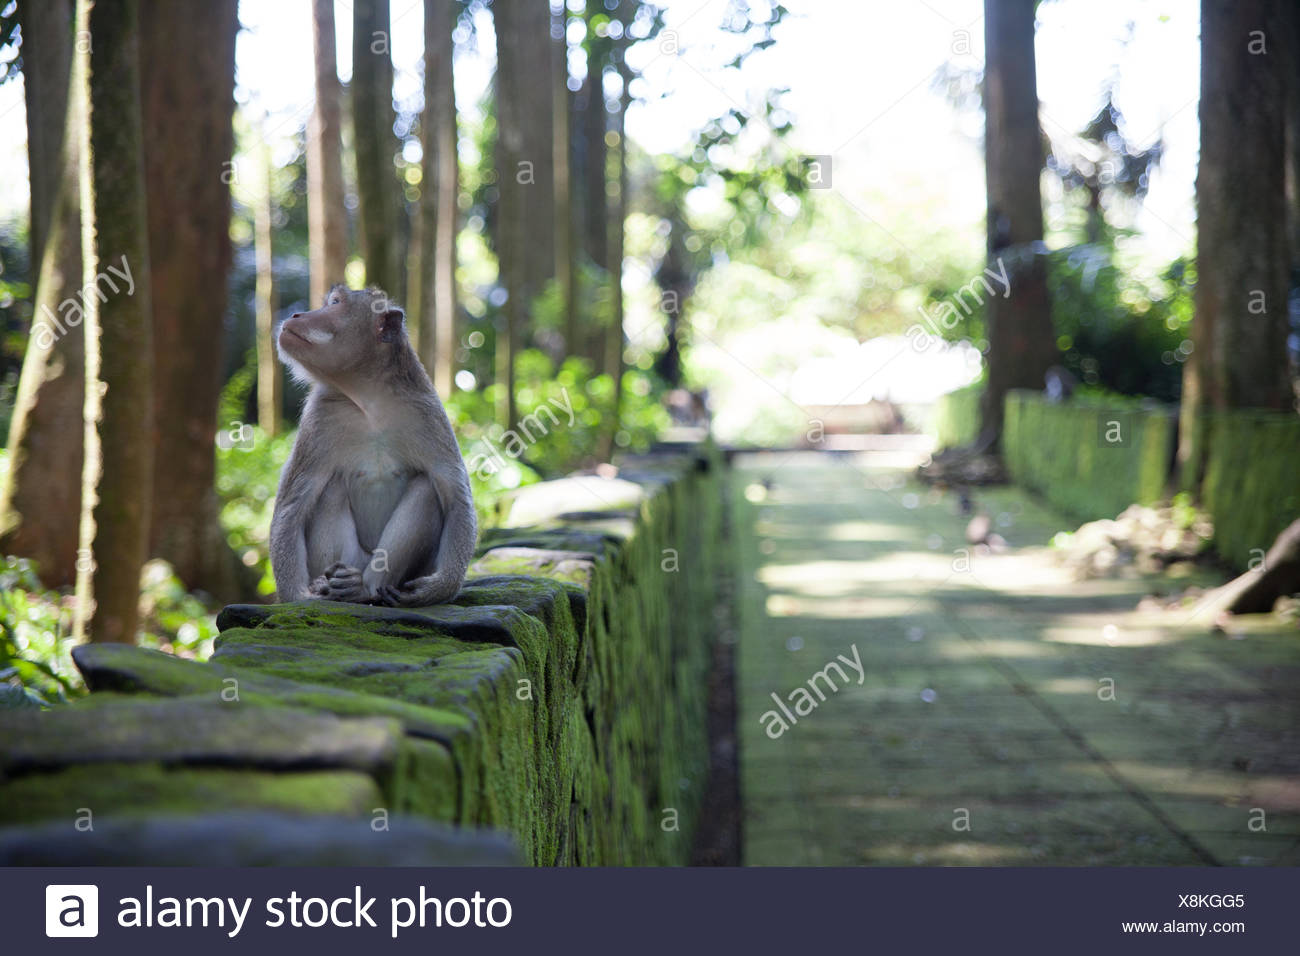 Monkey Sitting par les troncs d'arbres Photo Stock